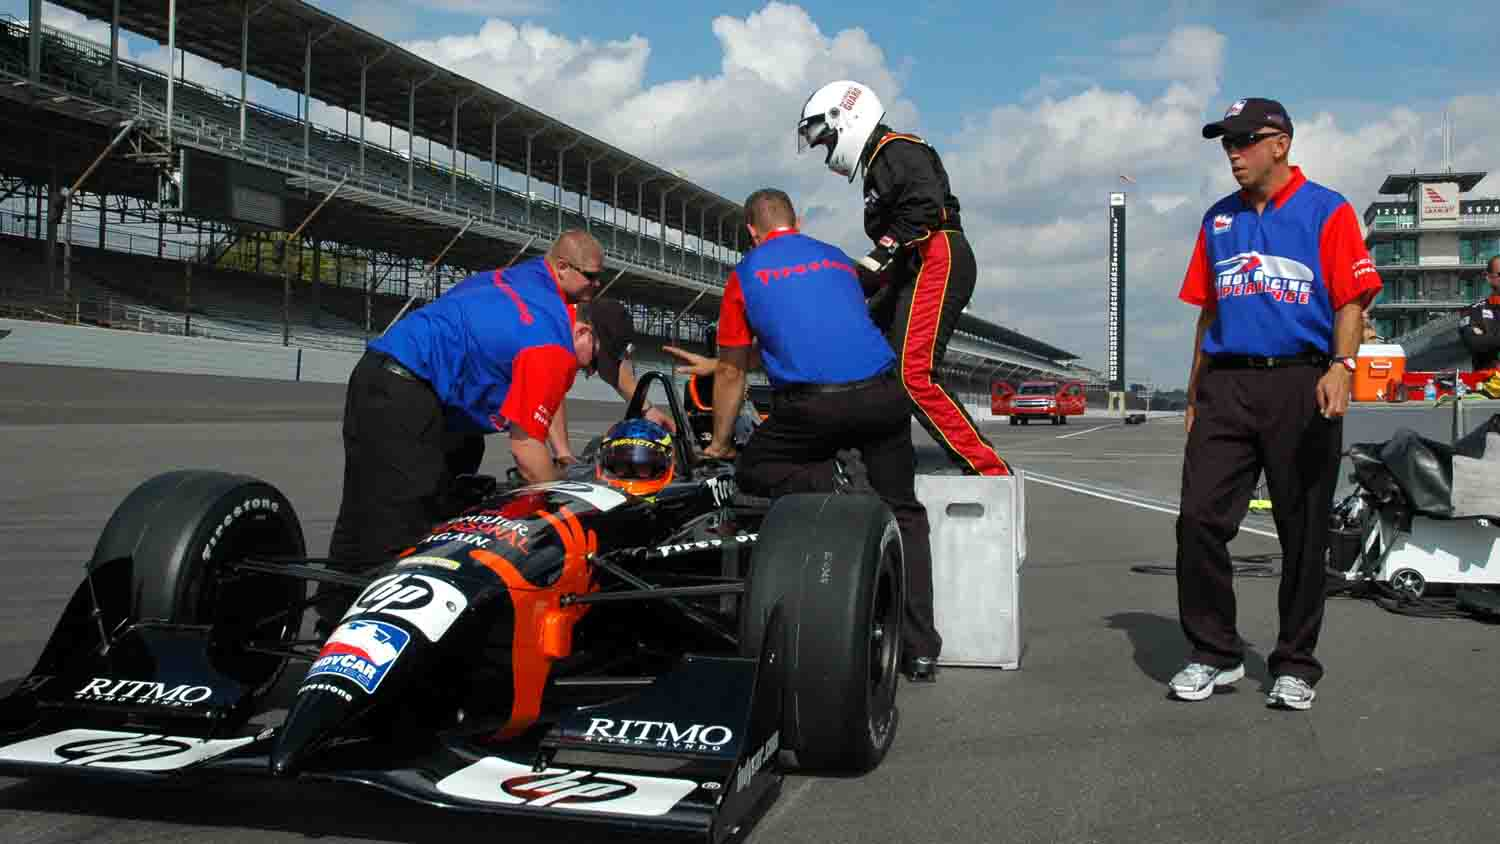 Indy Racing Experience 2